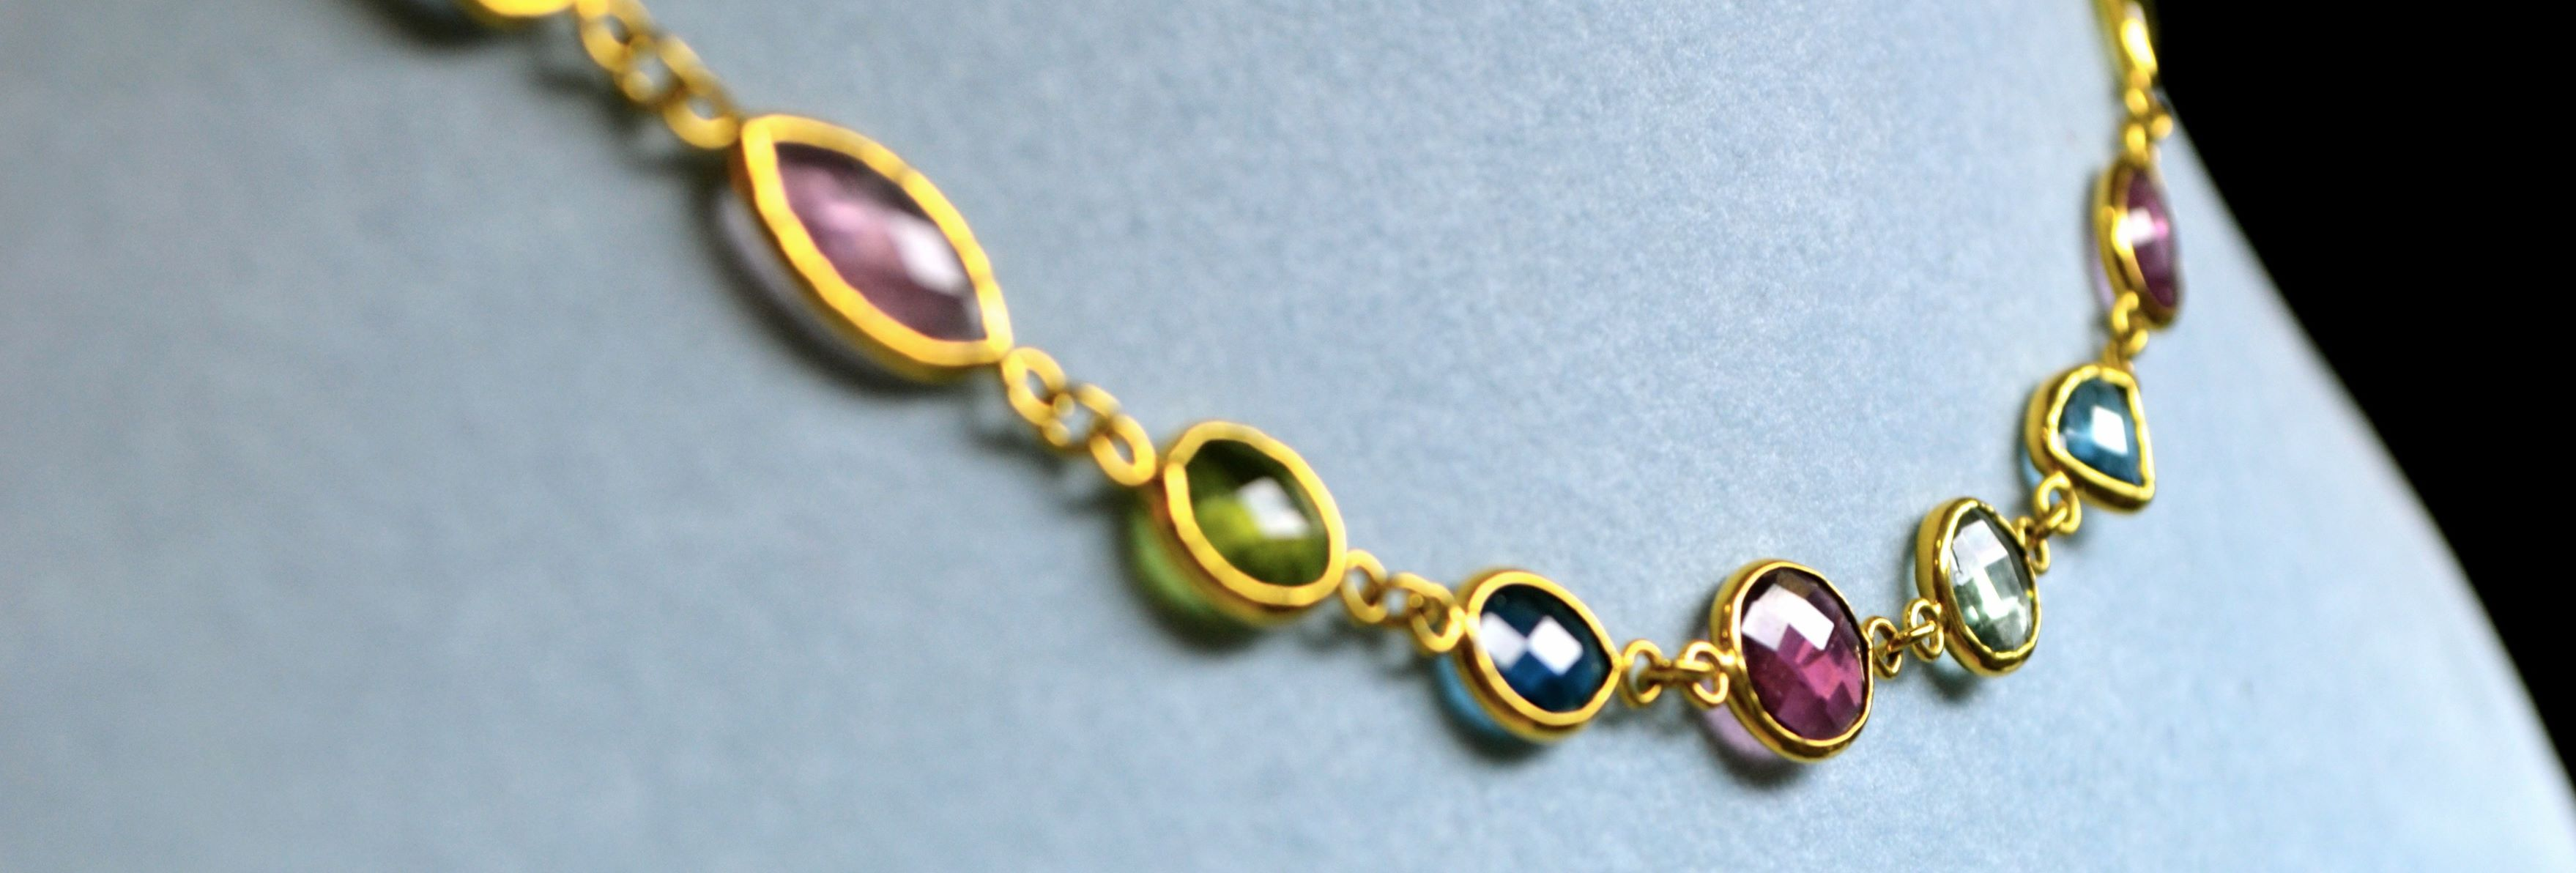 Custom chain with gemstones